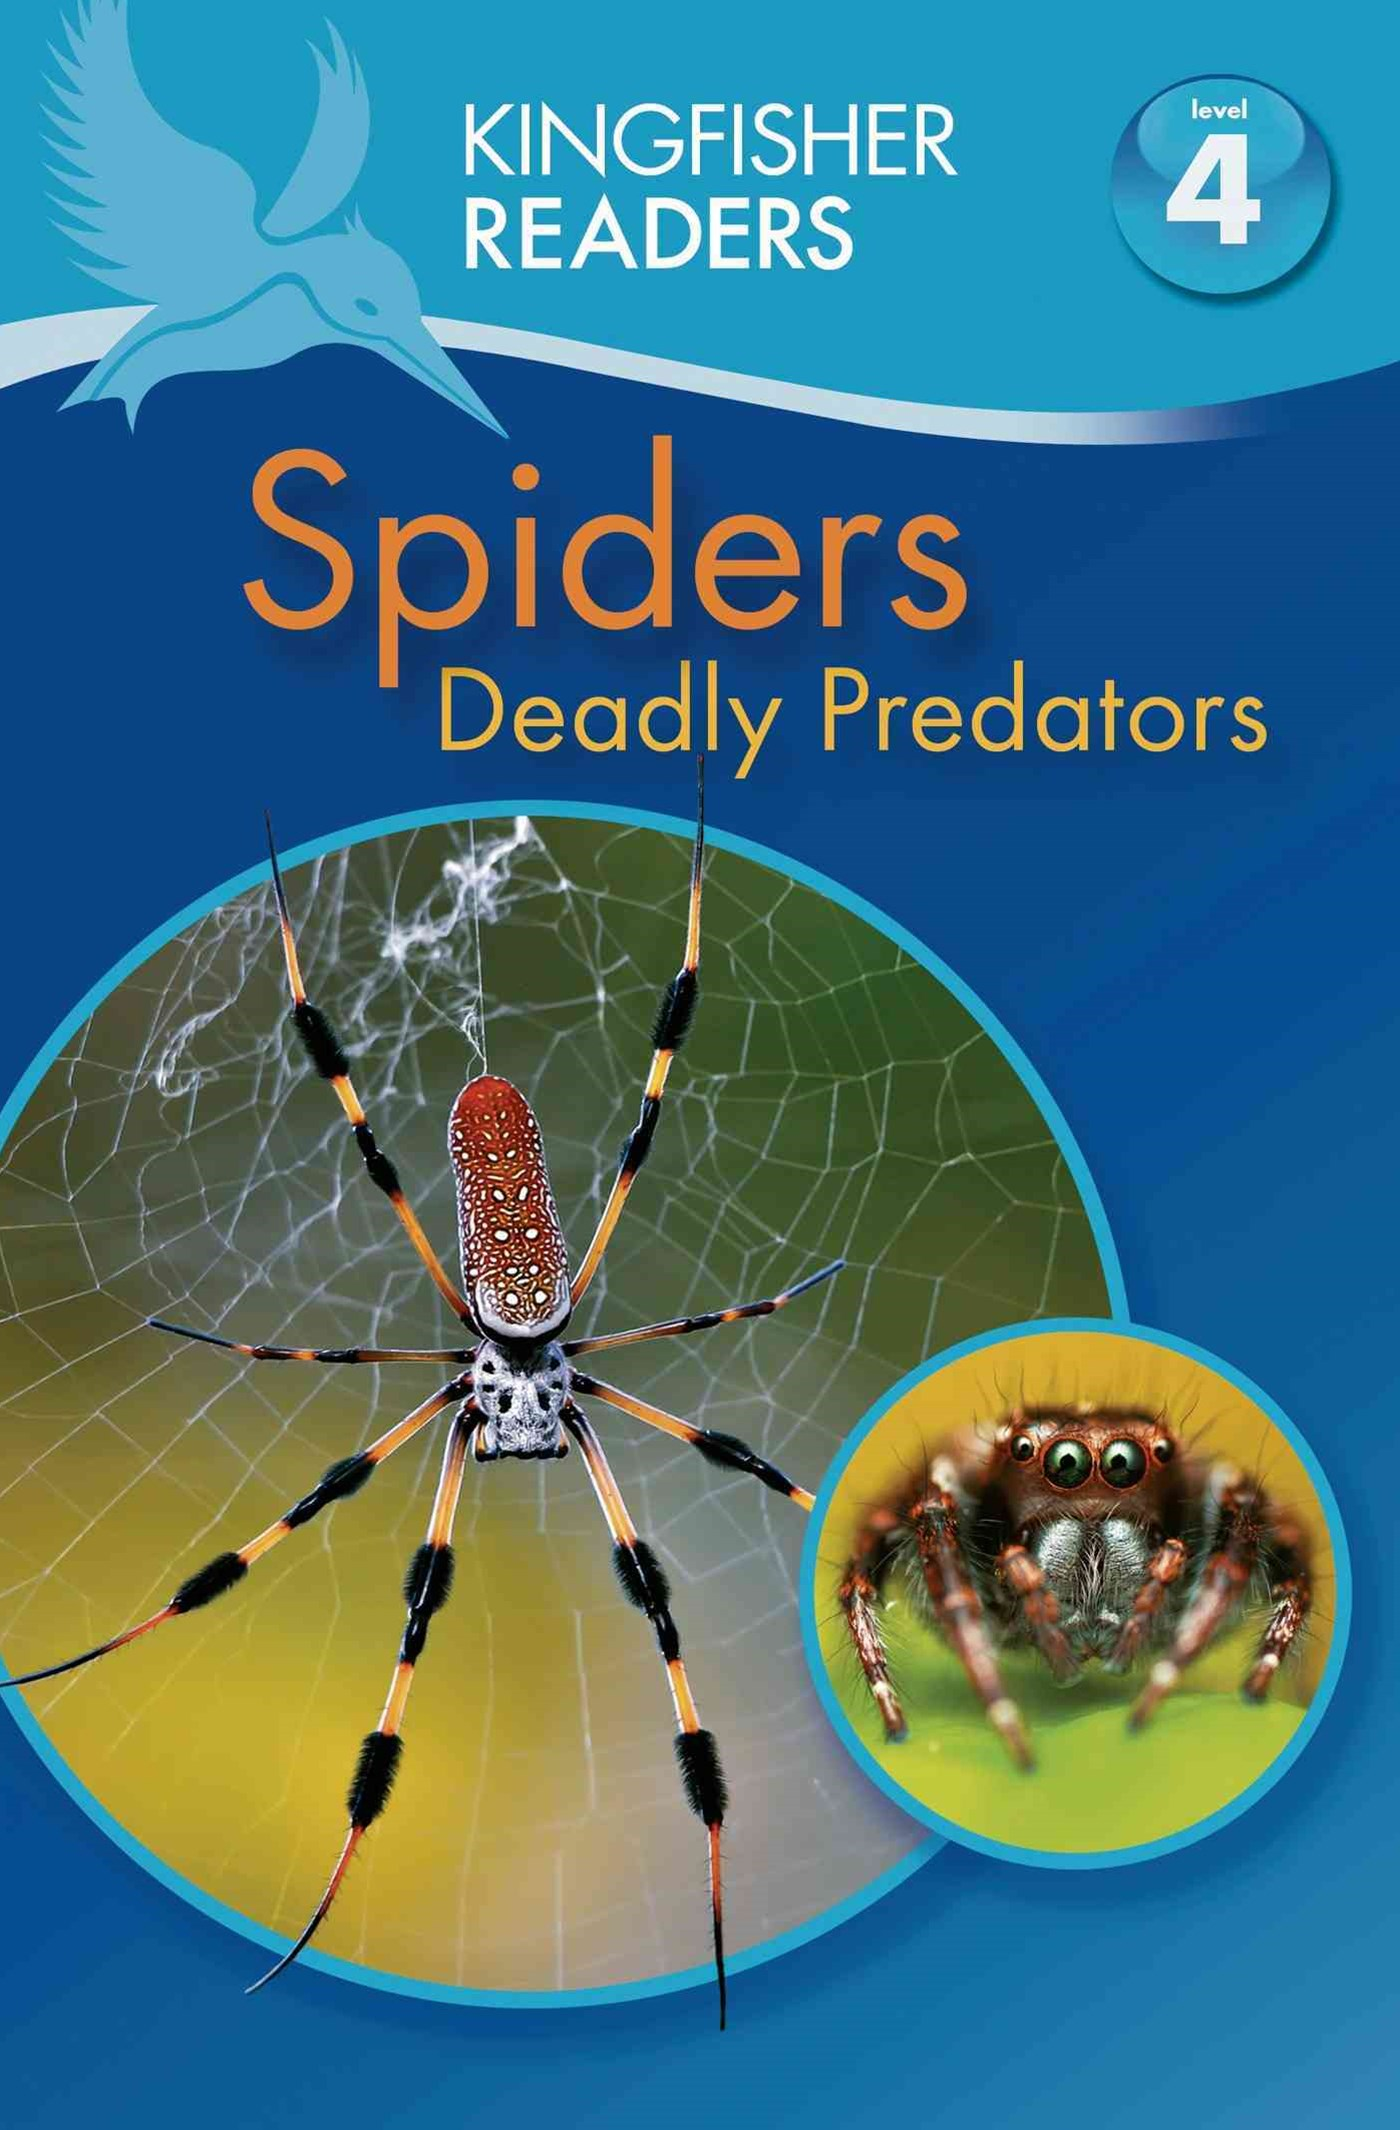 Spiders - Kingfisher Readers